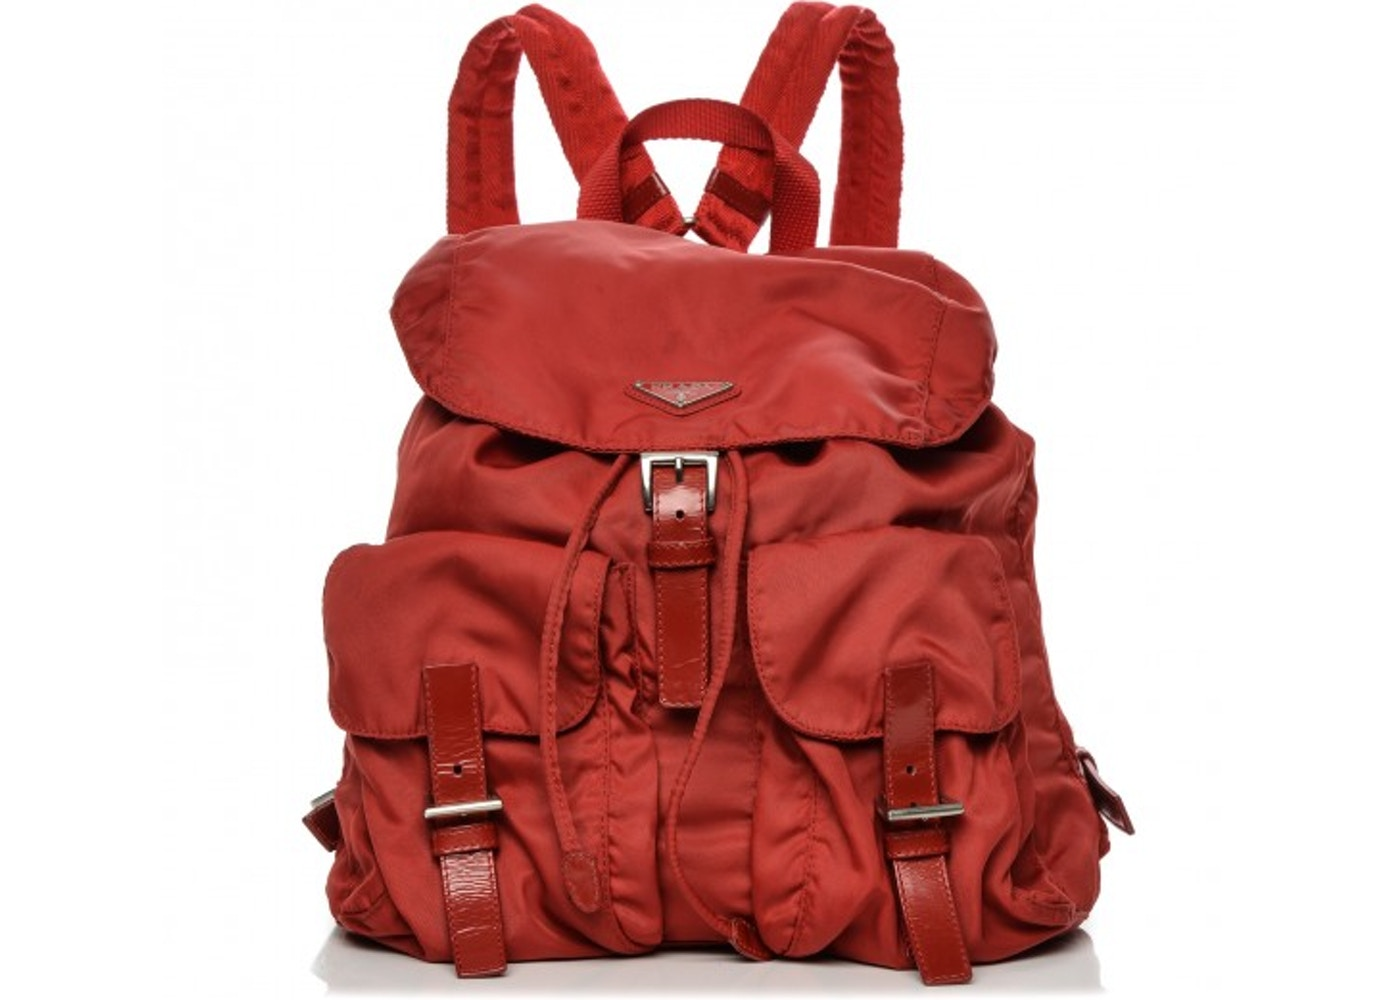 c310a5bd520d Prada Vela Backpack Small Rosso Red. Small Rosso Red